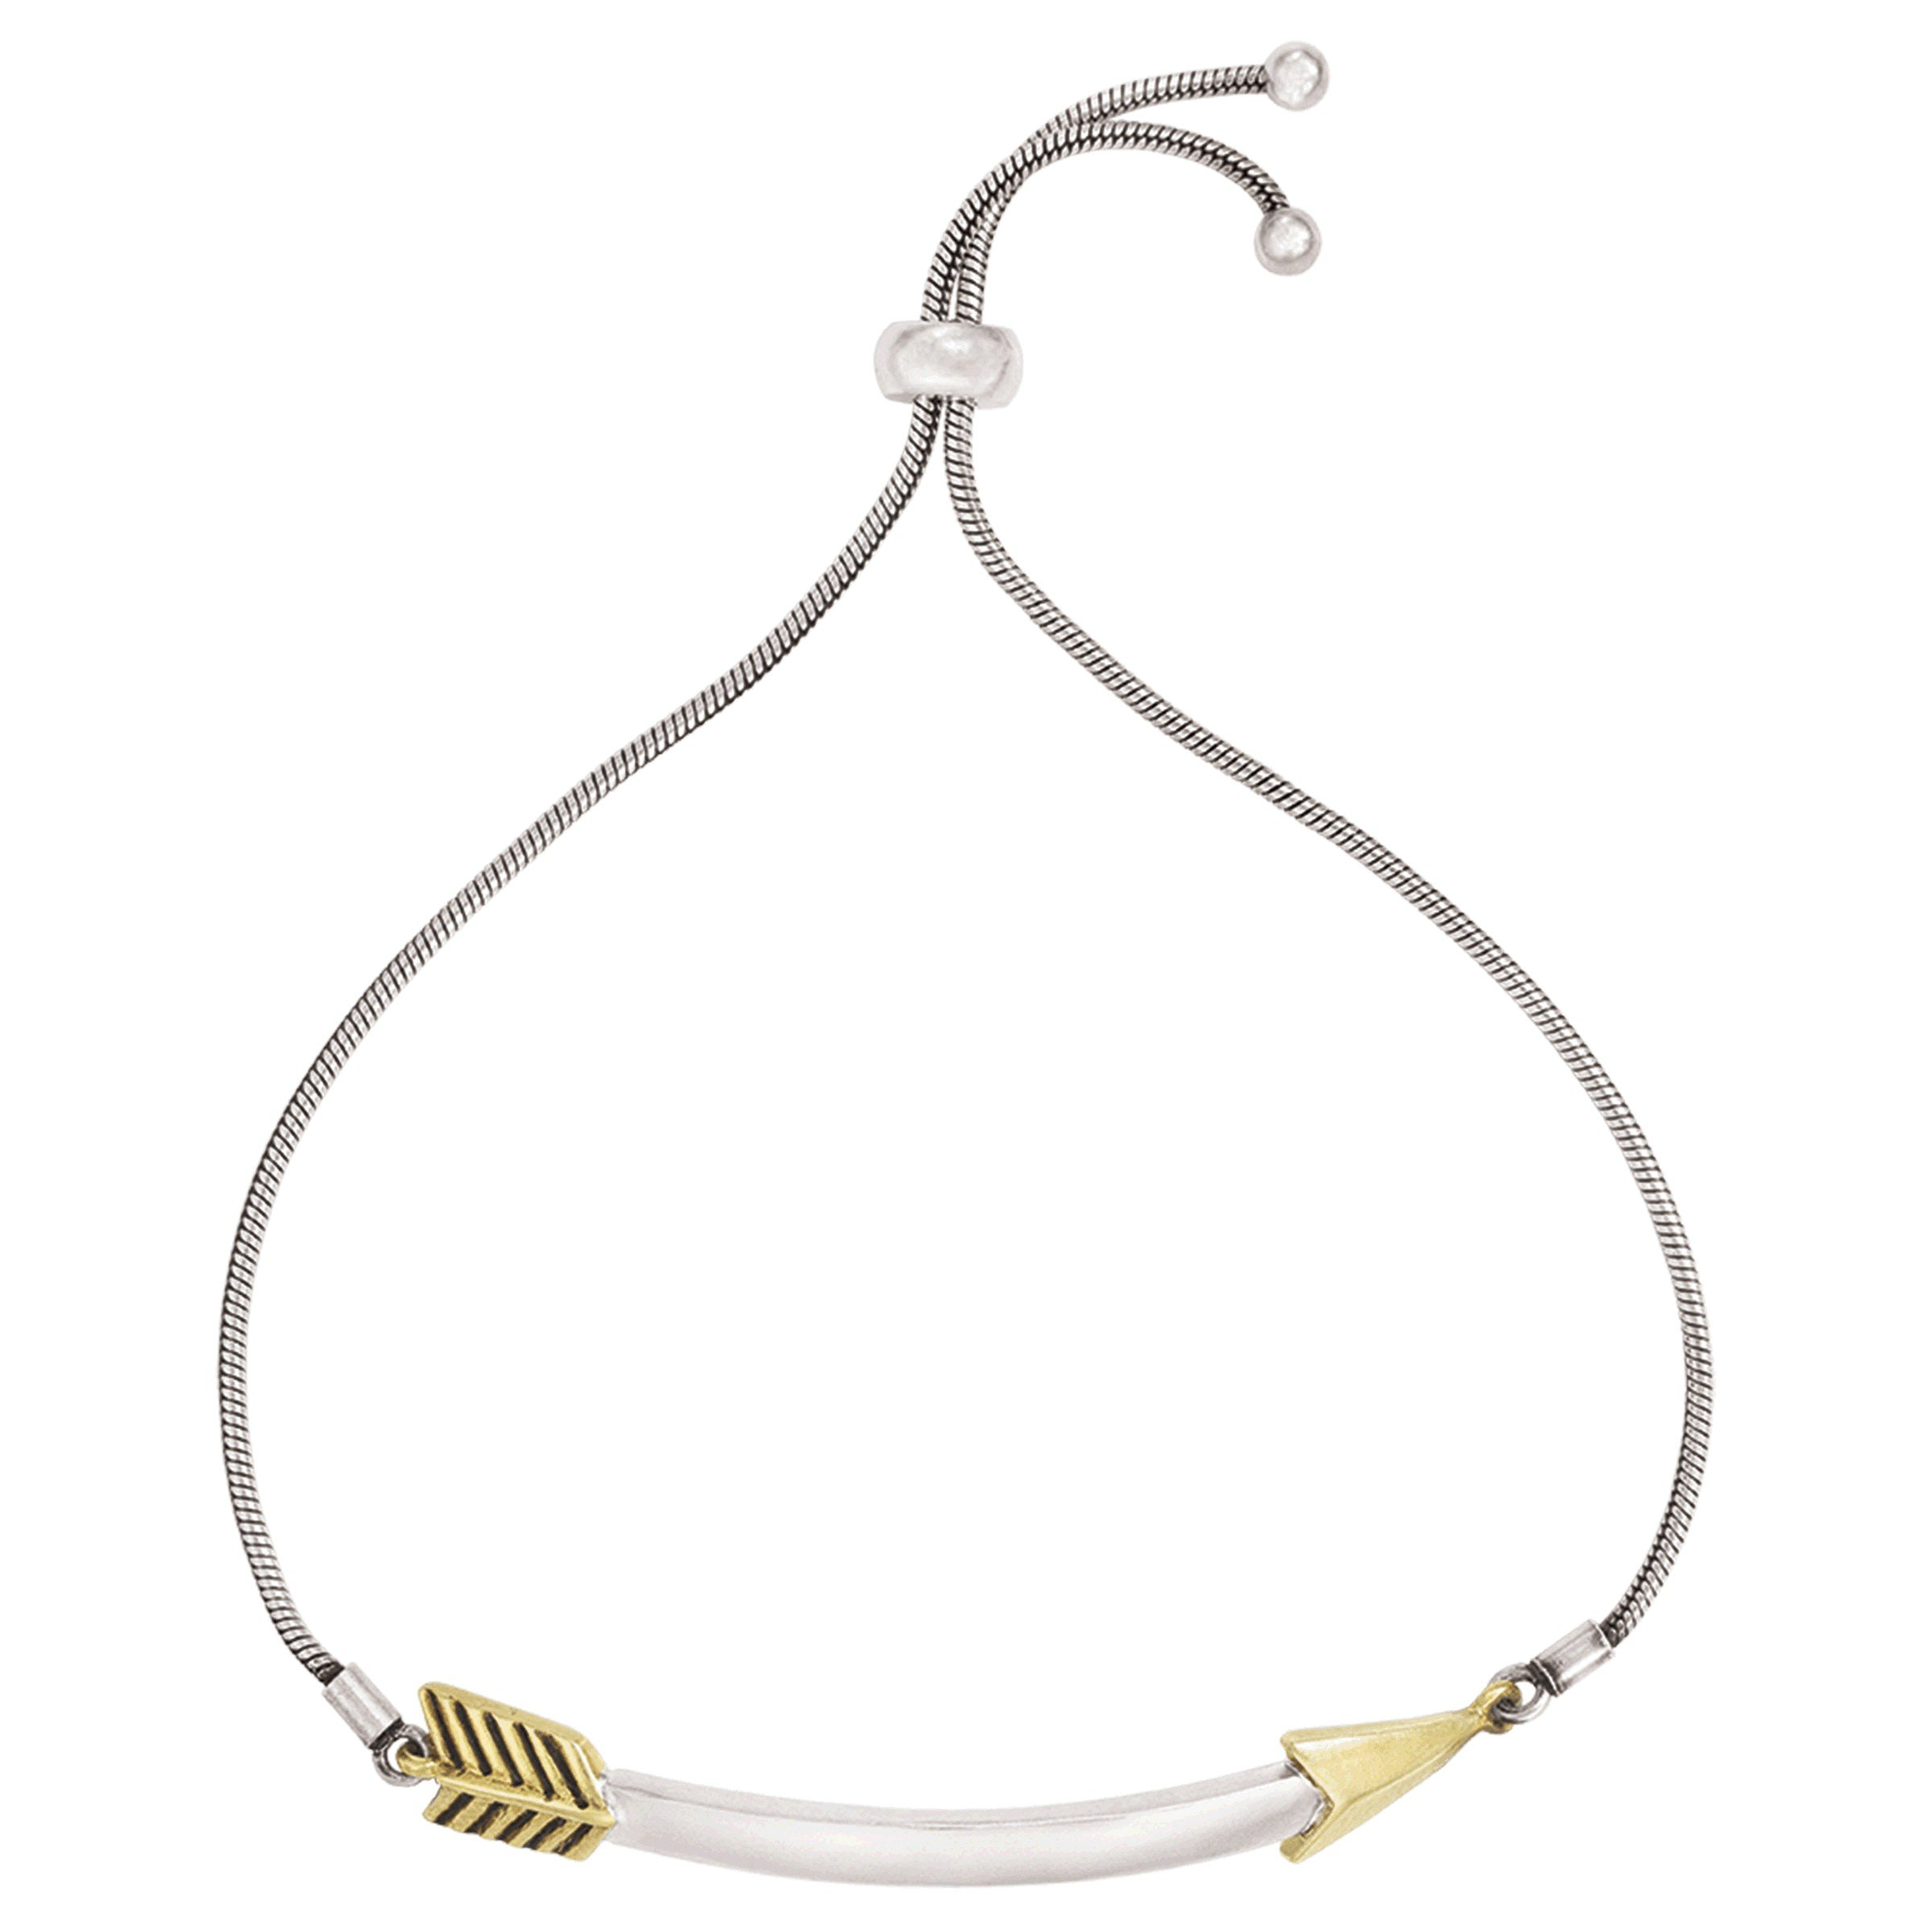 Silpada 'Curved Arrow' Bolo Chain Bracelet in Sterling Silver & Brass, 9''